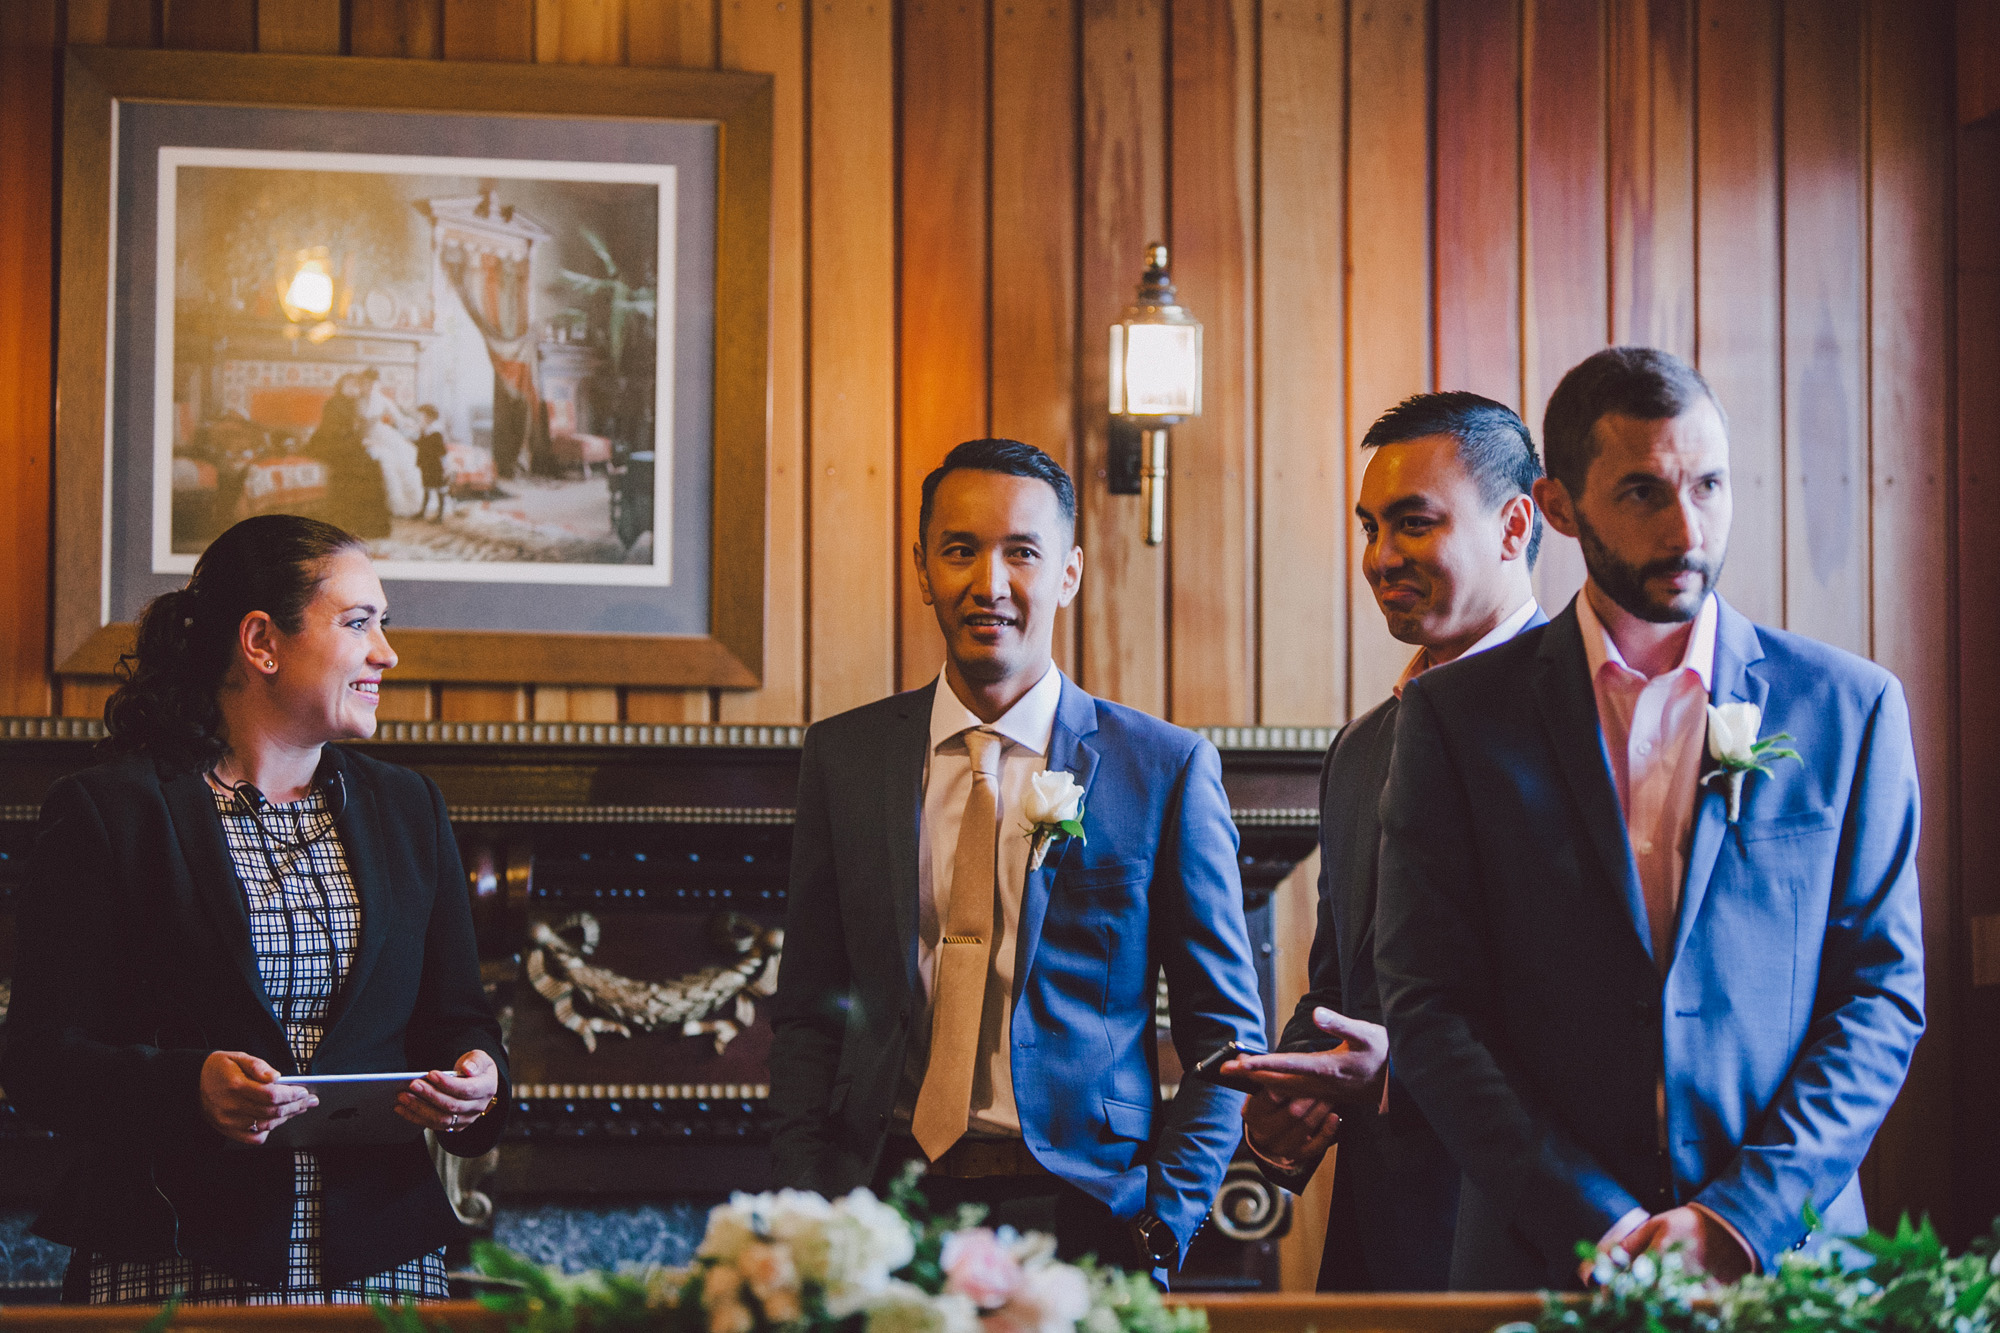 Sarah_McEvoy_Wellington_Wedding_Photographer_047.jpg